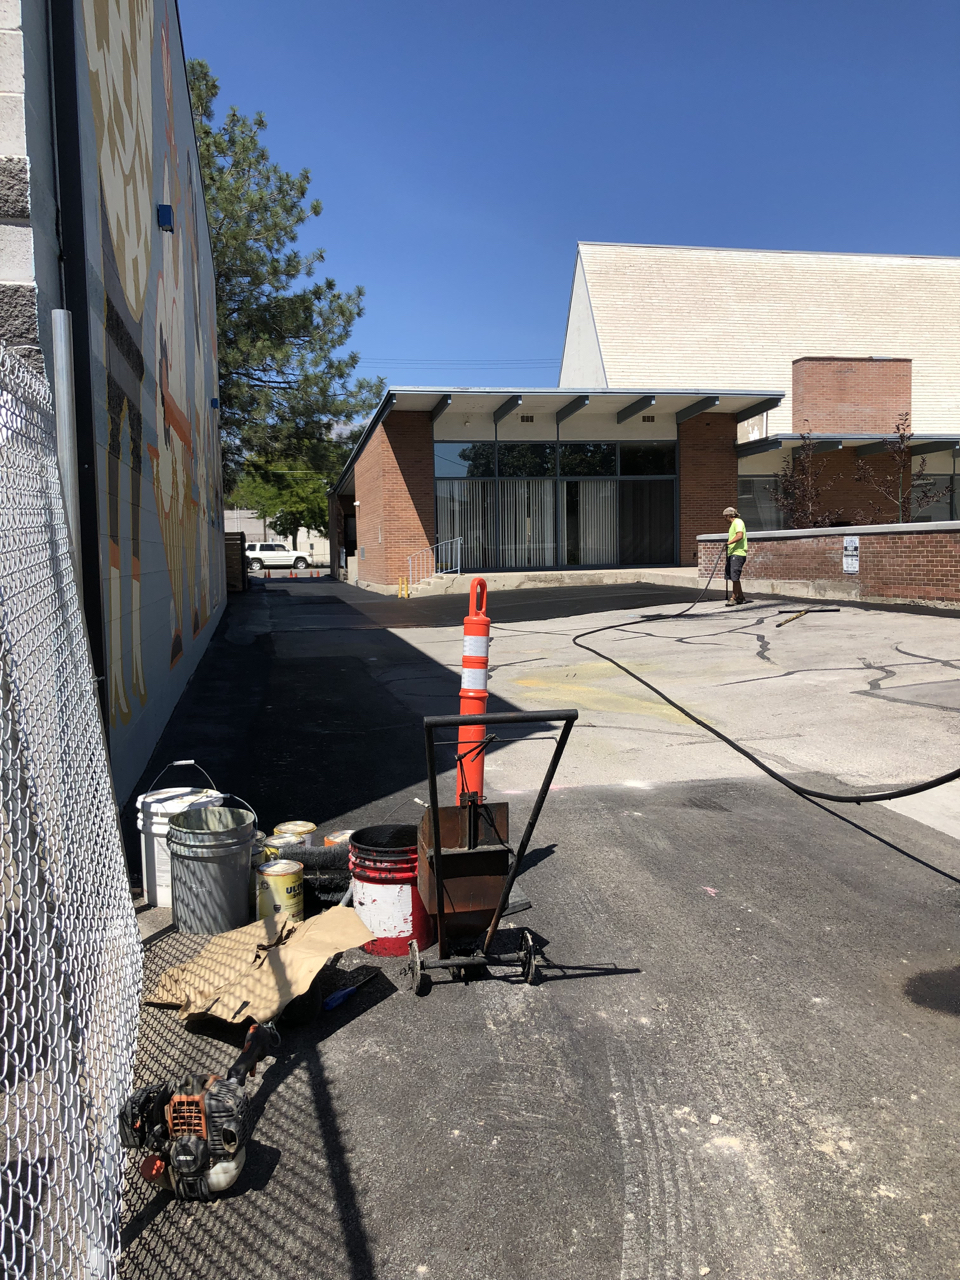 We had the alley alongside the studio, and the parking for the church next door resurfaced as a thank you for letting us use their parking occasionally during construction and dealing with all the disruption.